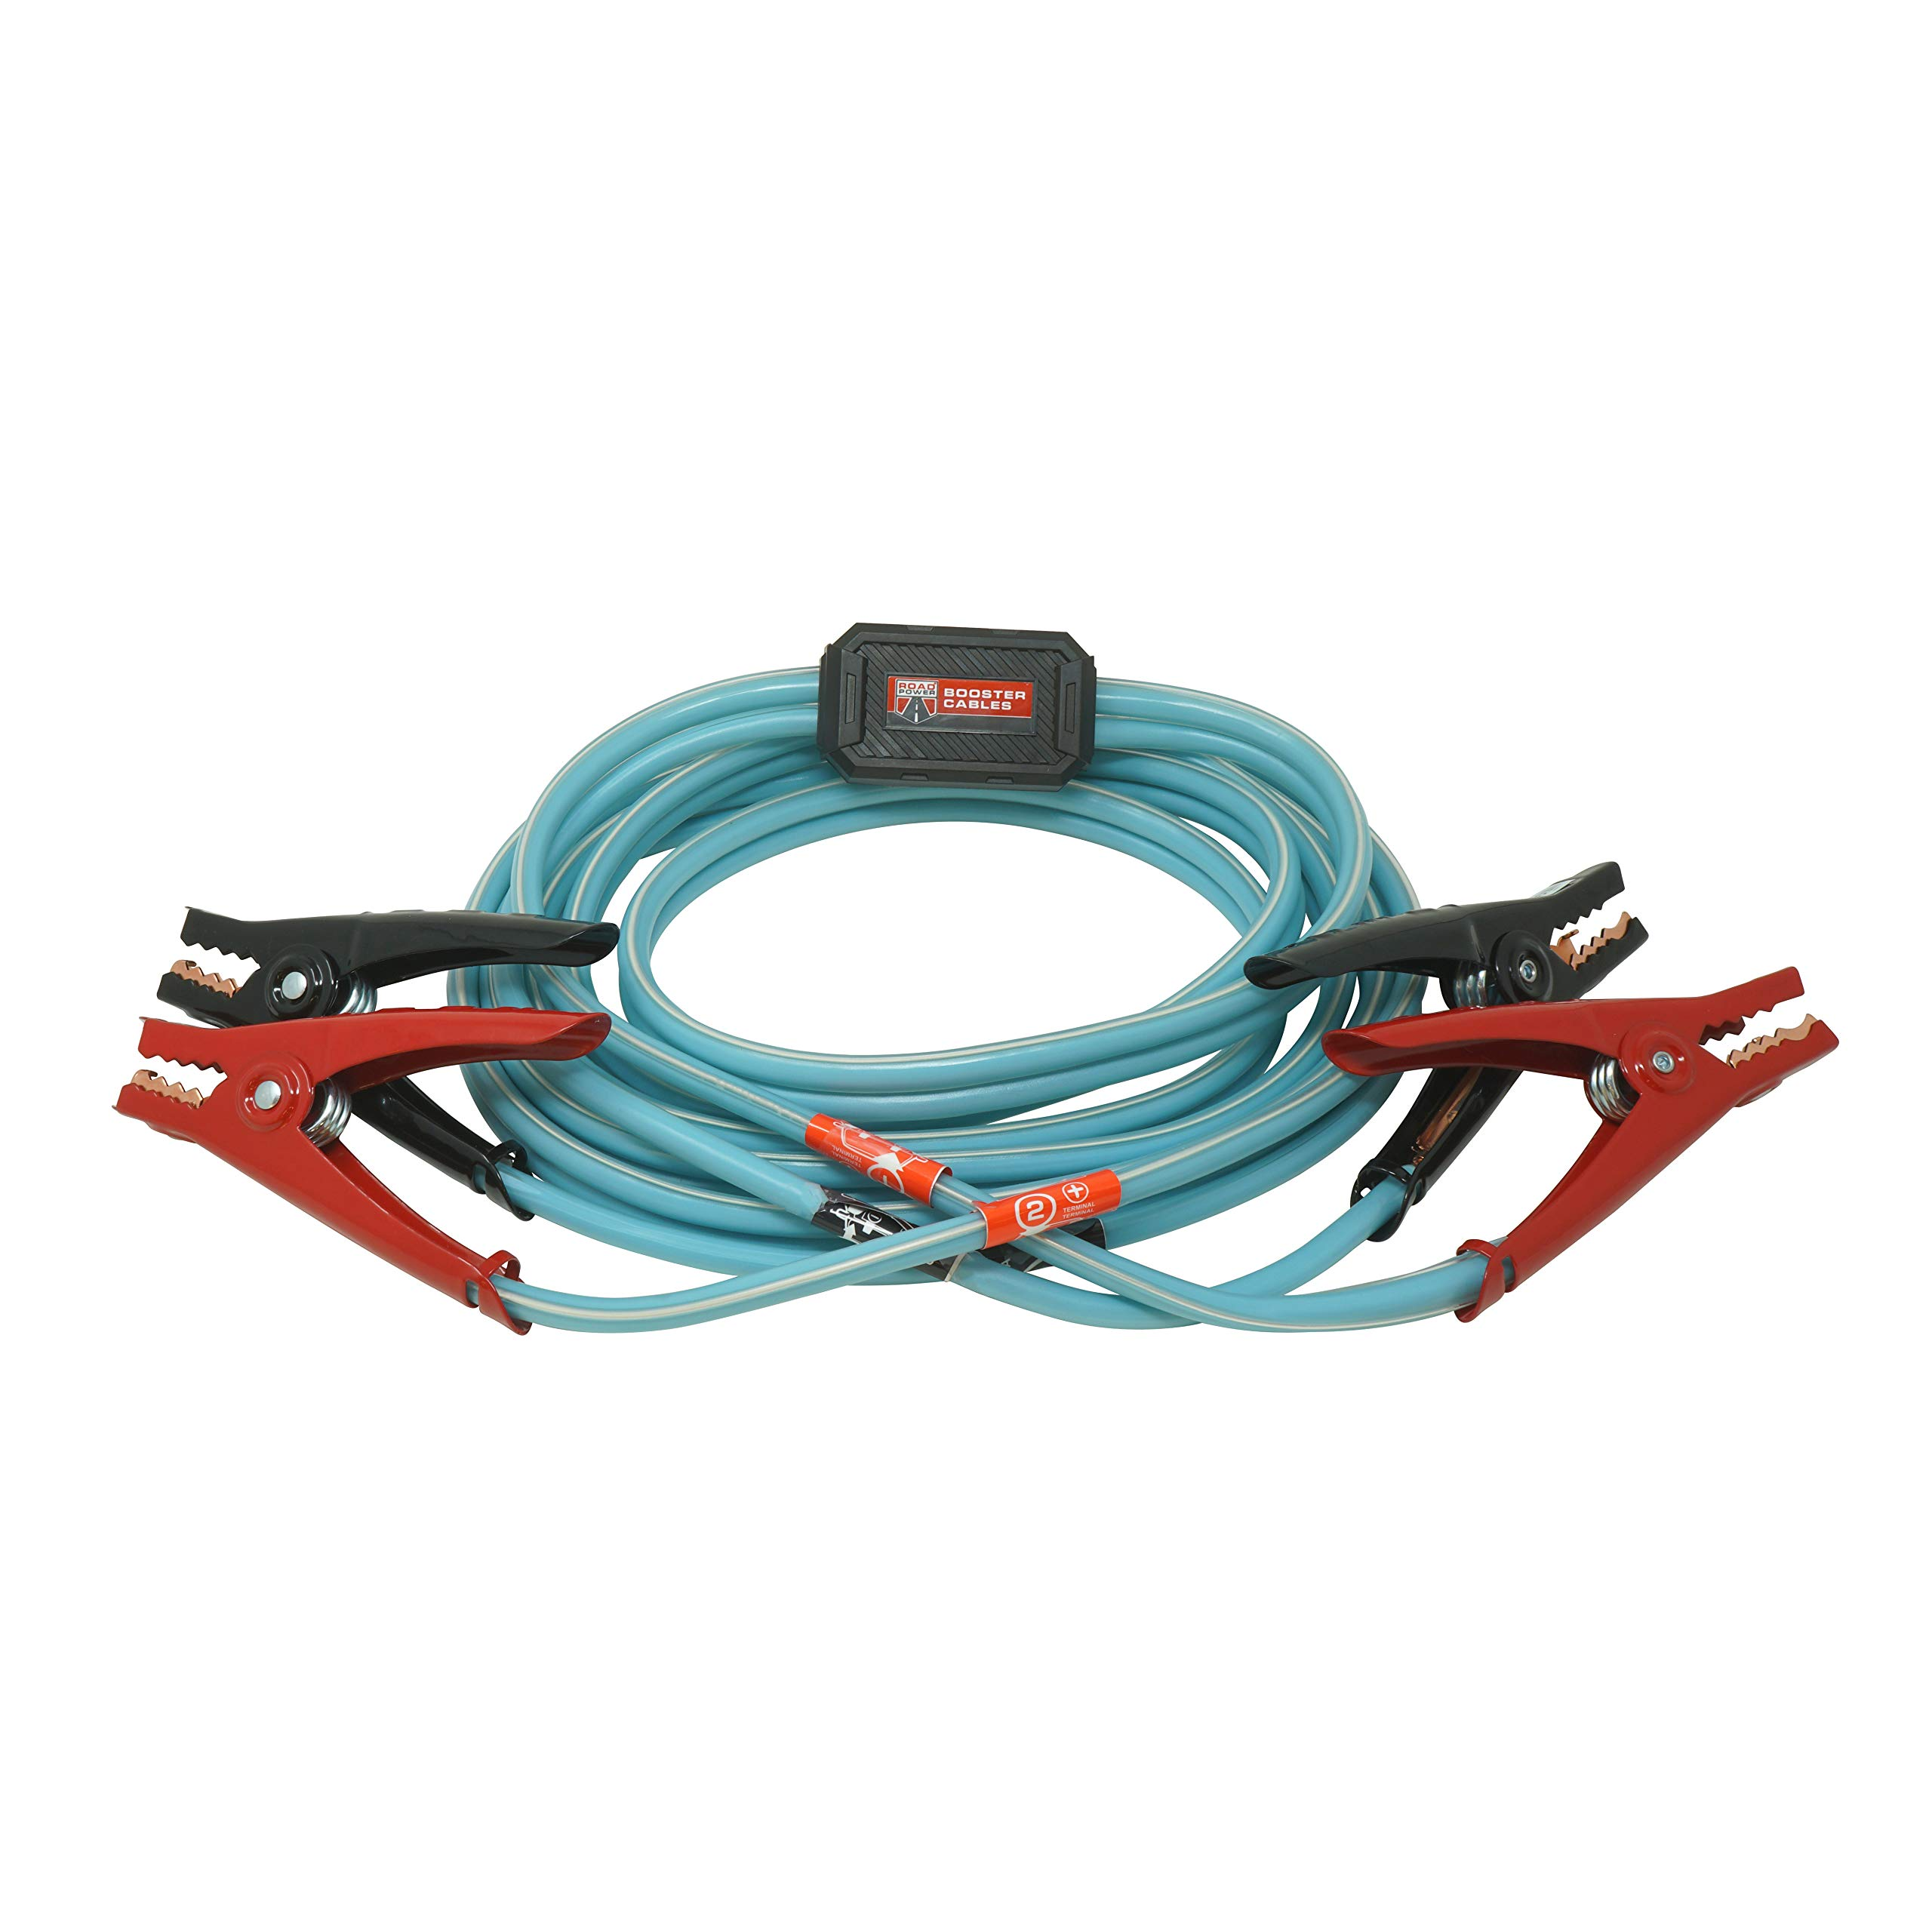 Road Power 84696616 6 Gauge, 16' Blue Booster Cables with Exclusive Road Glow Technology